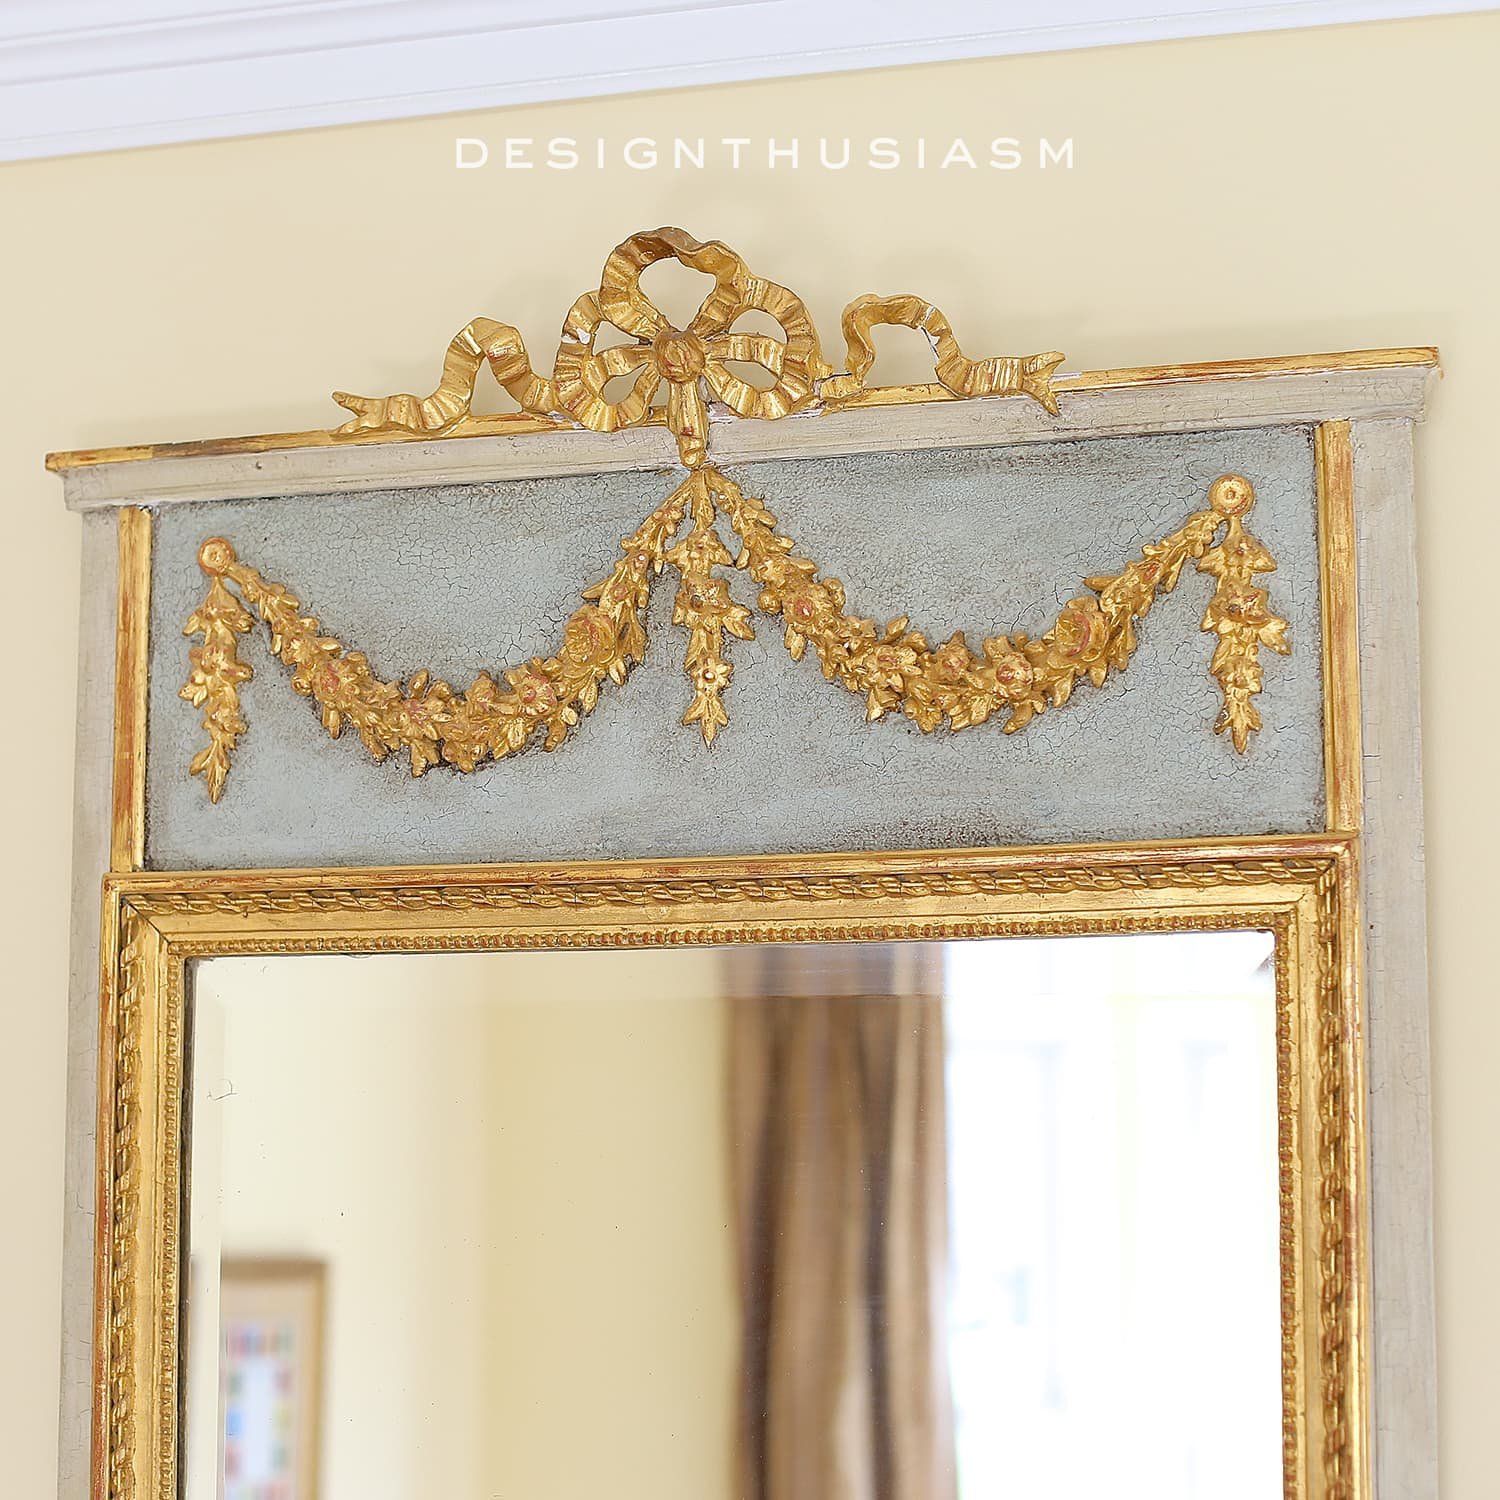 Adding French Country charm with gilded mirrors | Designthusiasm